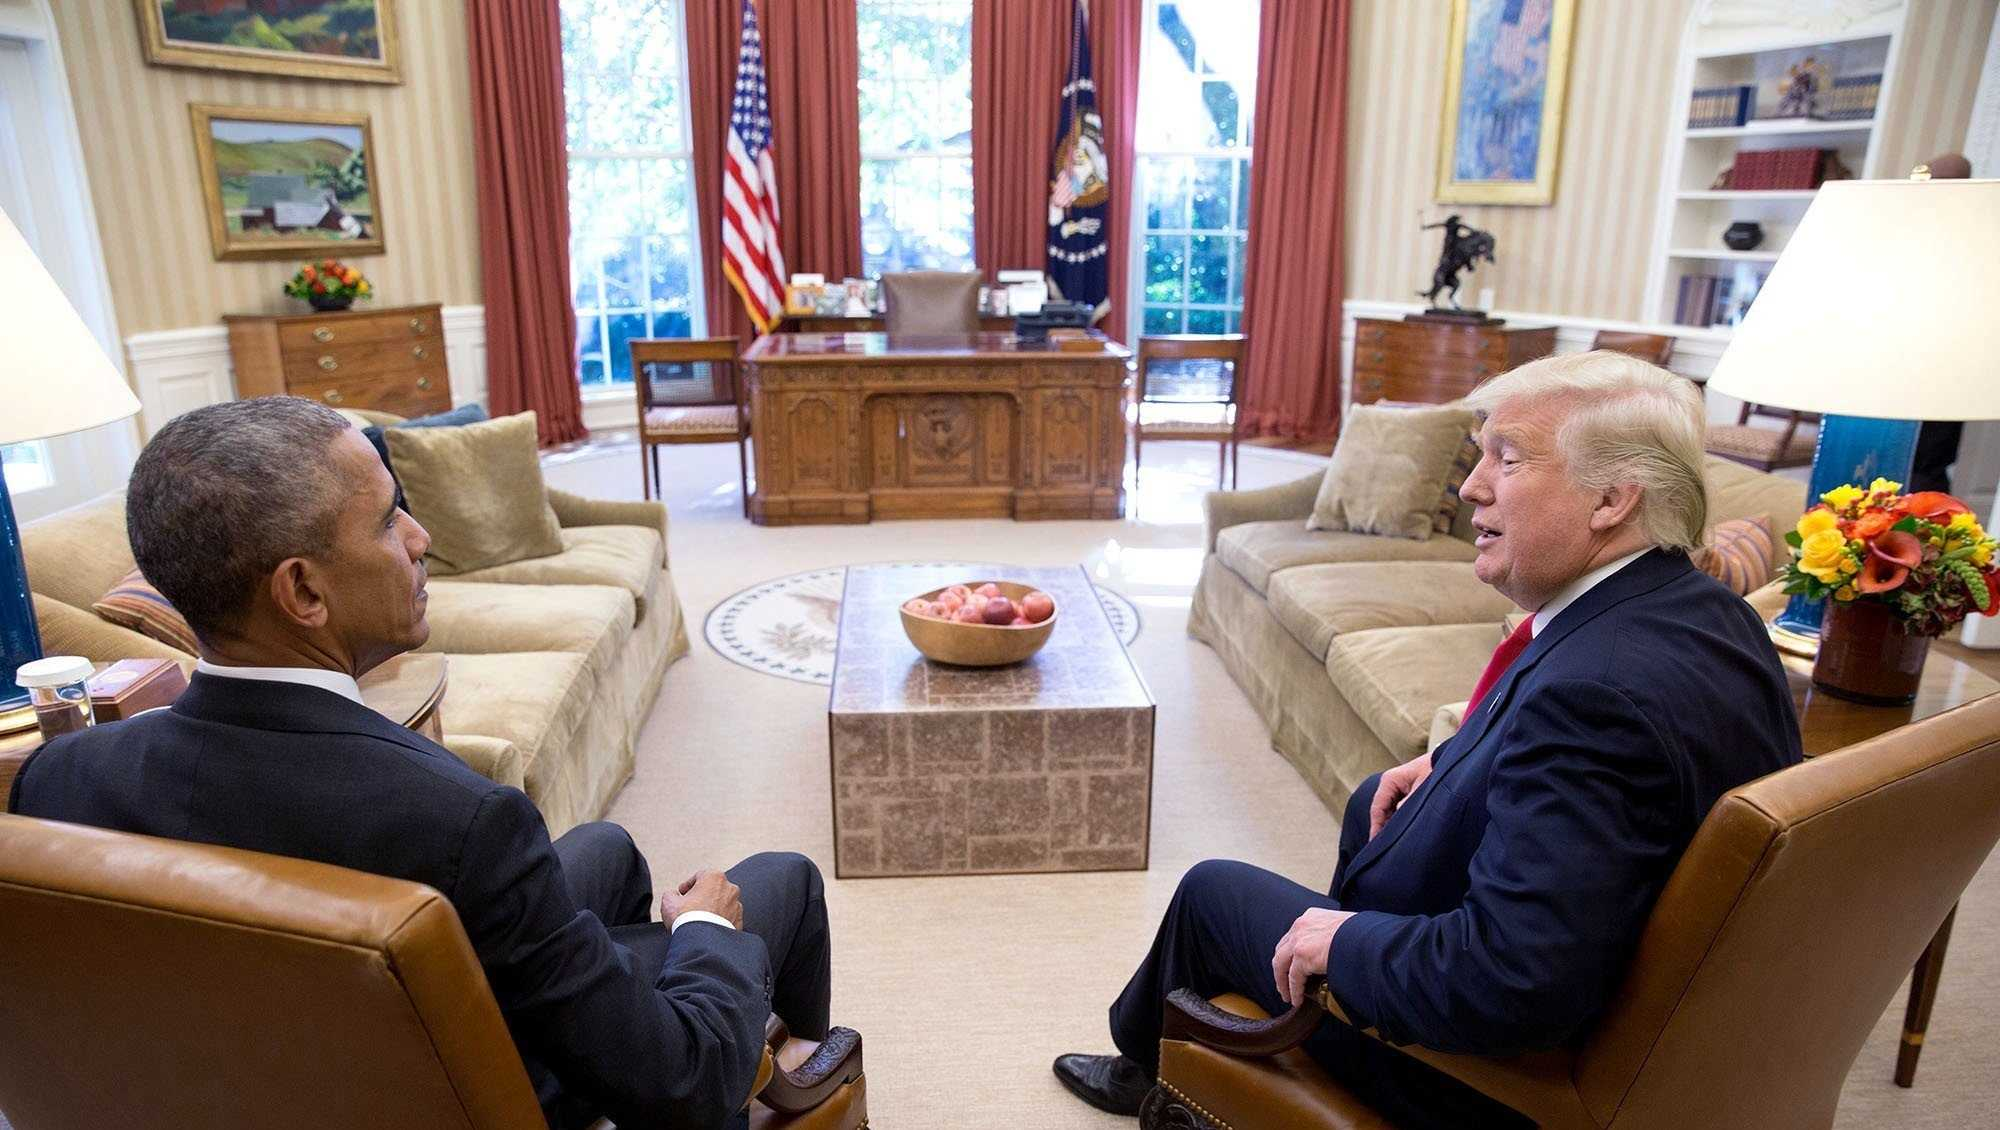 Then-President Barack Obama and Then-President-ElectDonald Trump are seen here at the White House in late 2016.